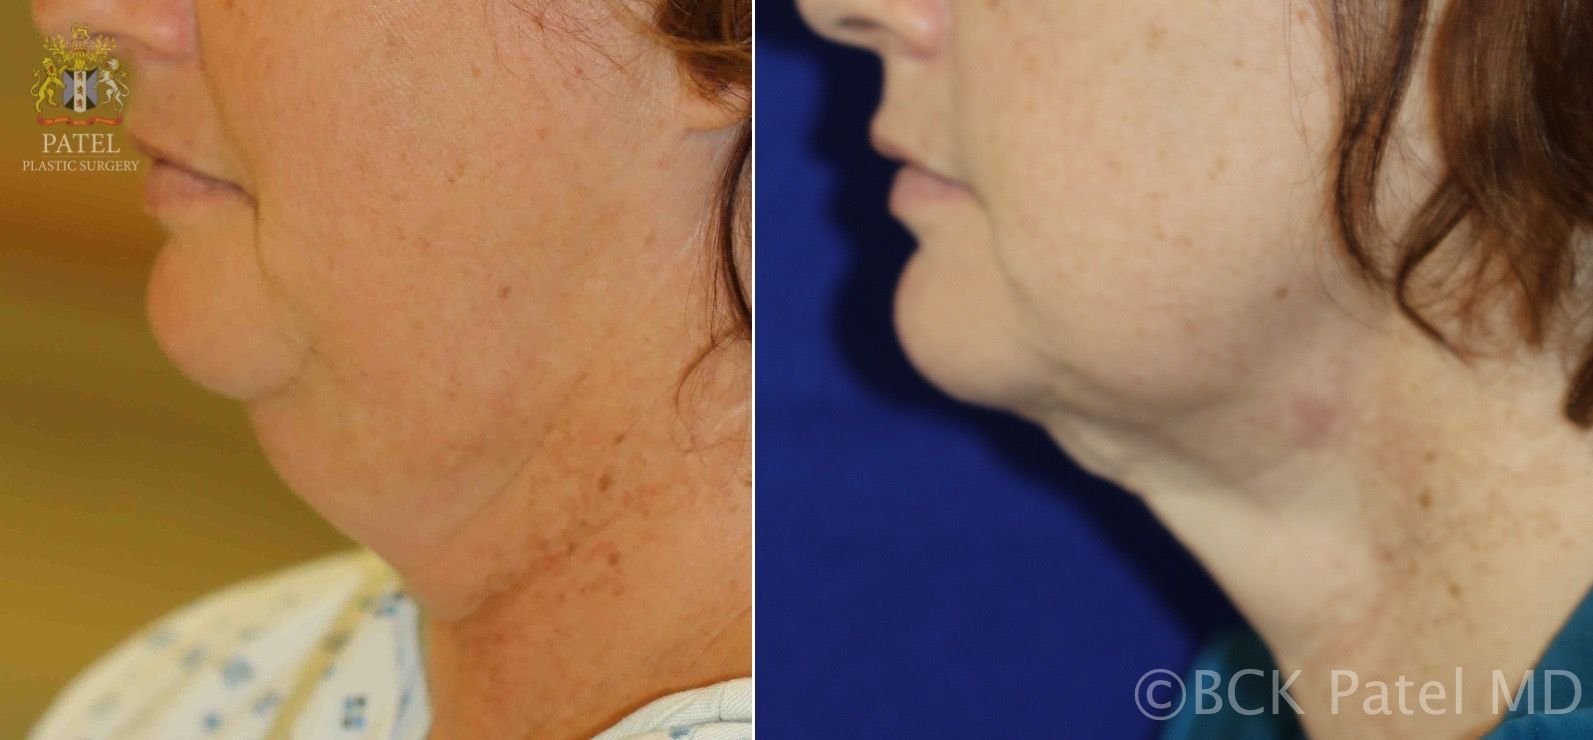 englishsurgeon.com. Before and after treatment of the fat neck by Dr. BCK Patel MD, FRCS of Salt Lake City, London, St George